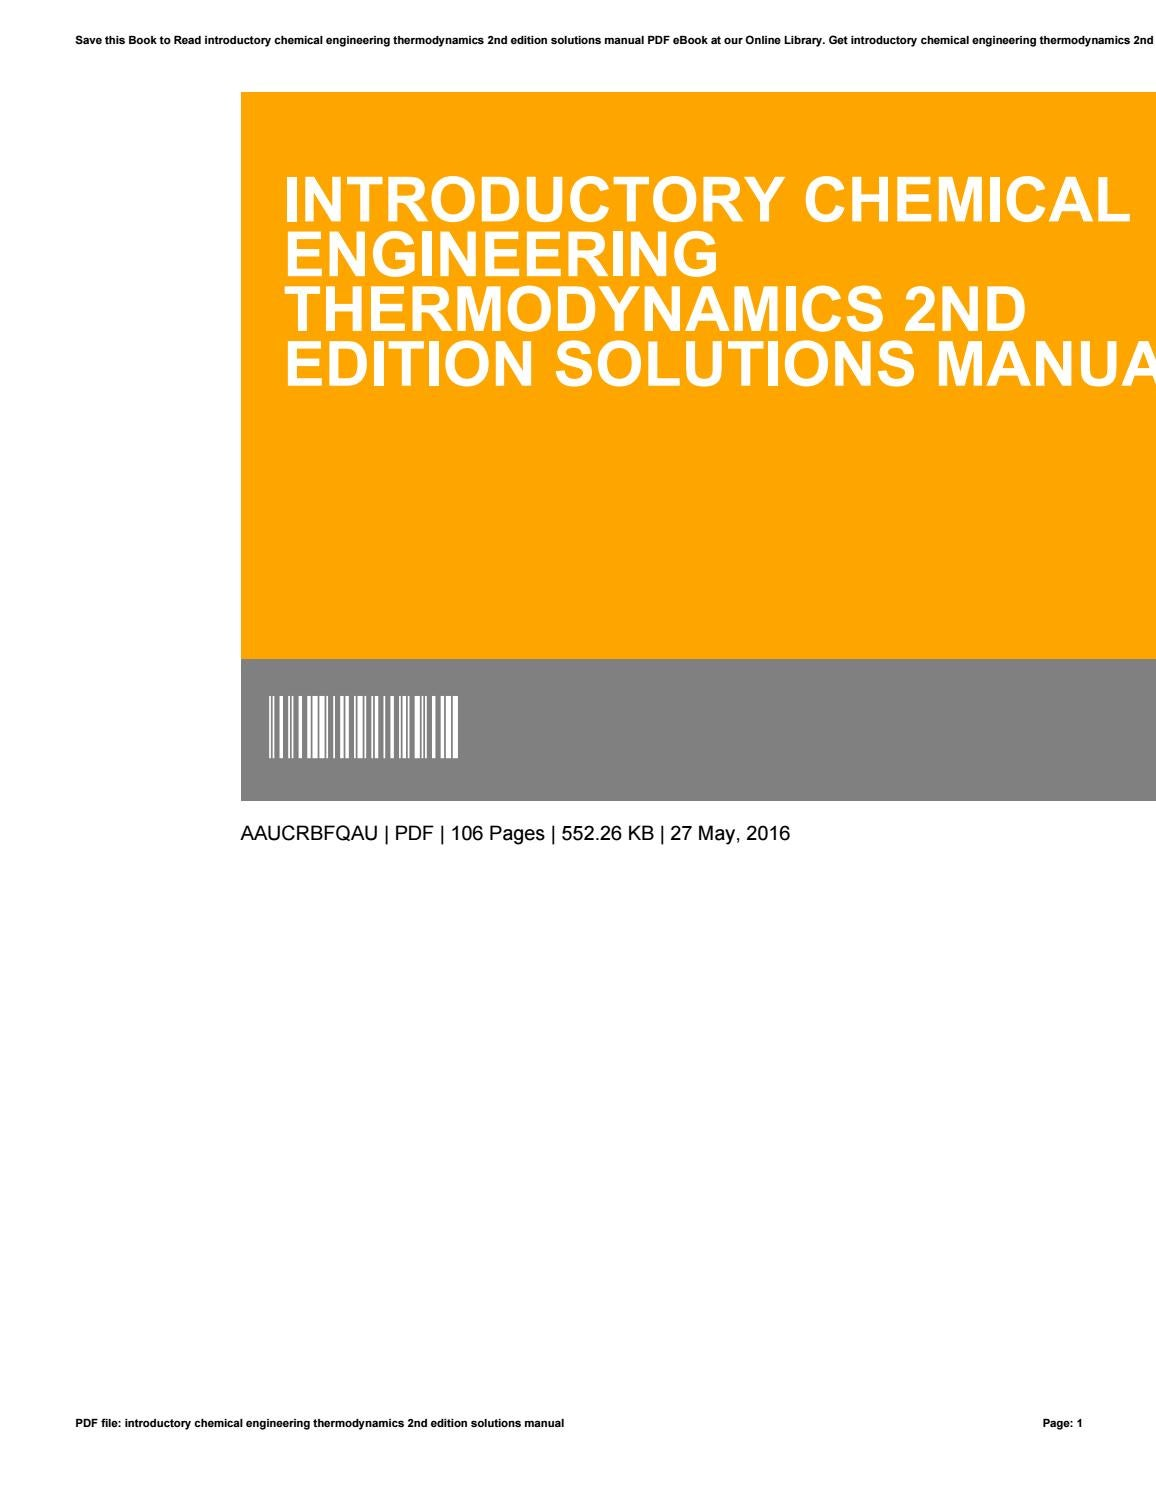 Introductory Chemical Engineering Thermodynamics 2nd Edition Solutions Manual By Johnketron4563